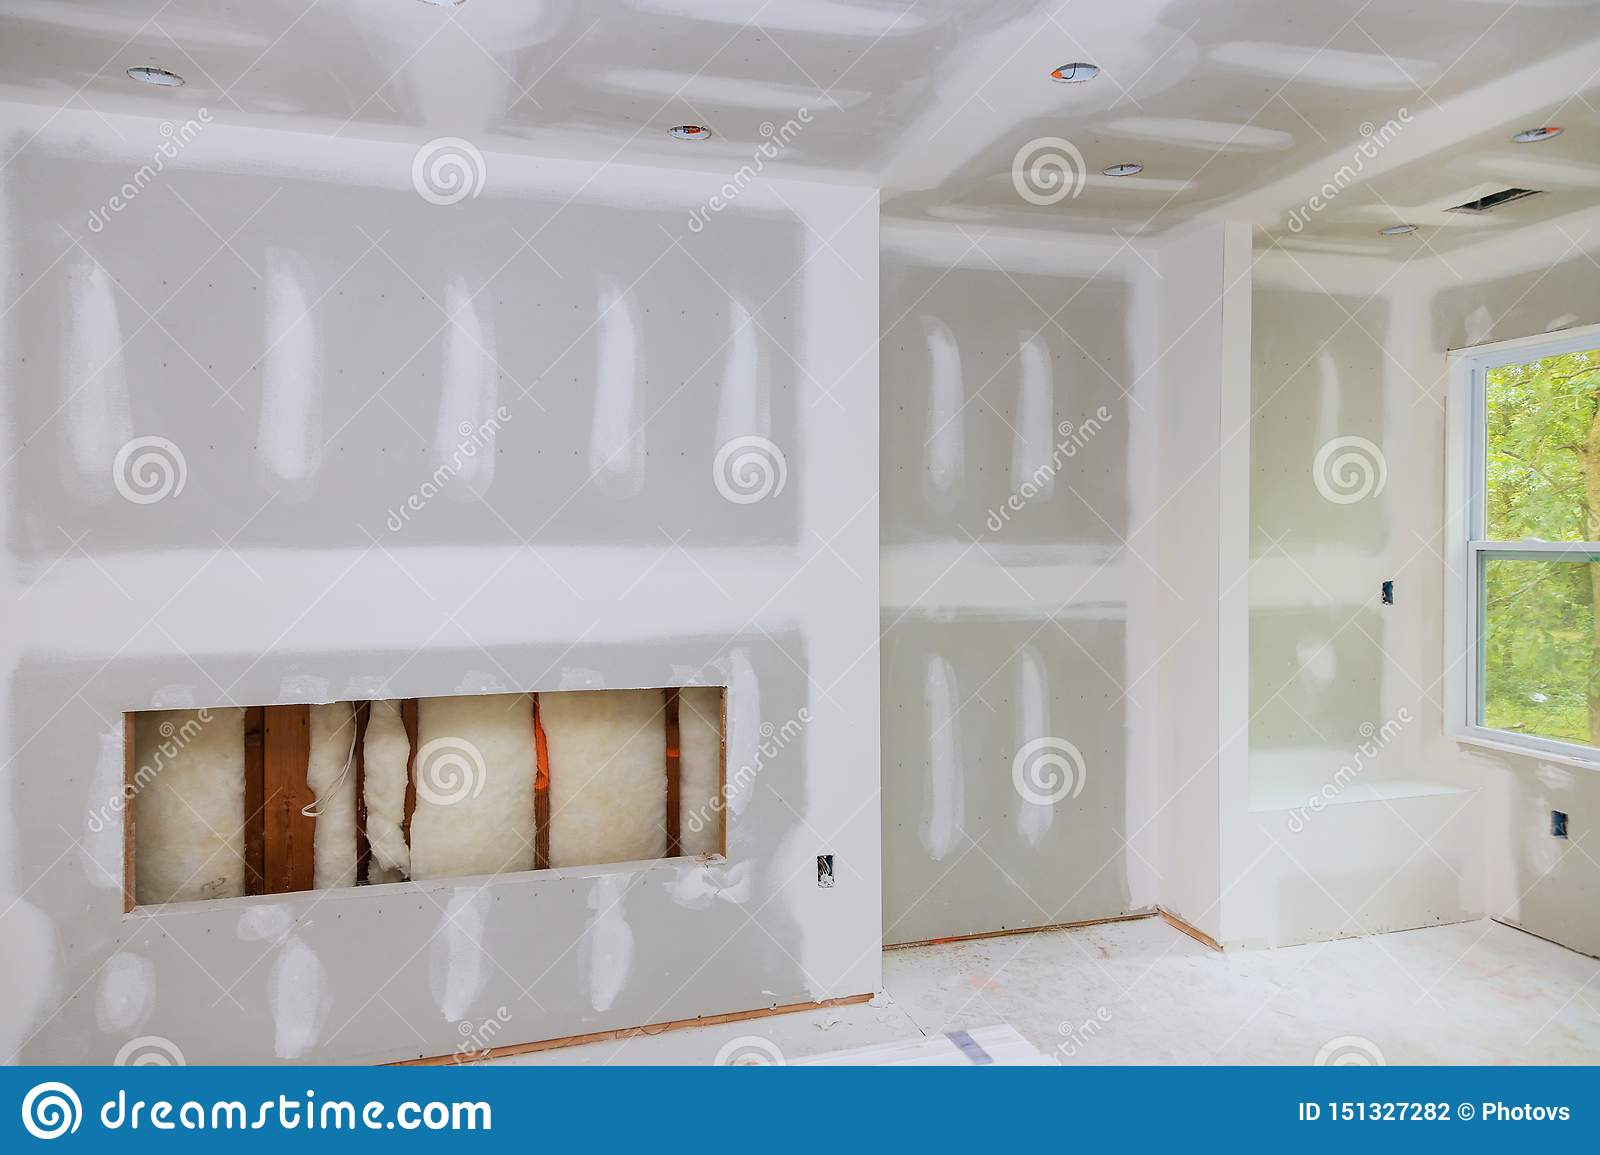 House Under Construction Gypsum Wall Is Under Construction Stock Photo Image Of Building Estate 151327282